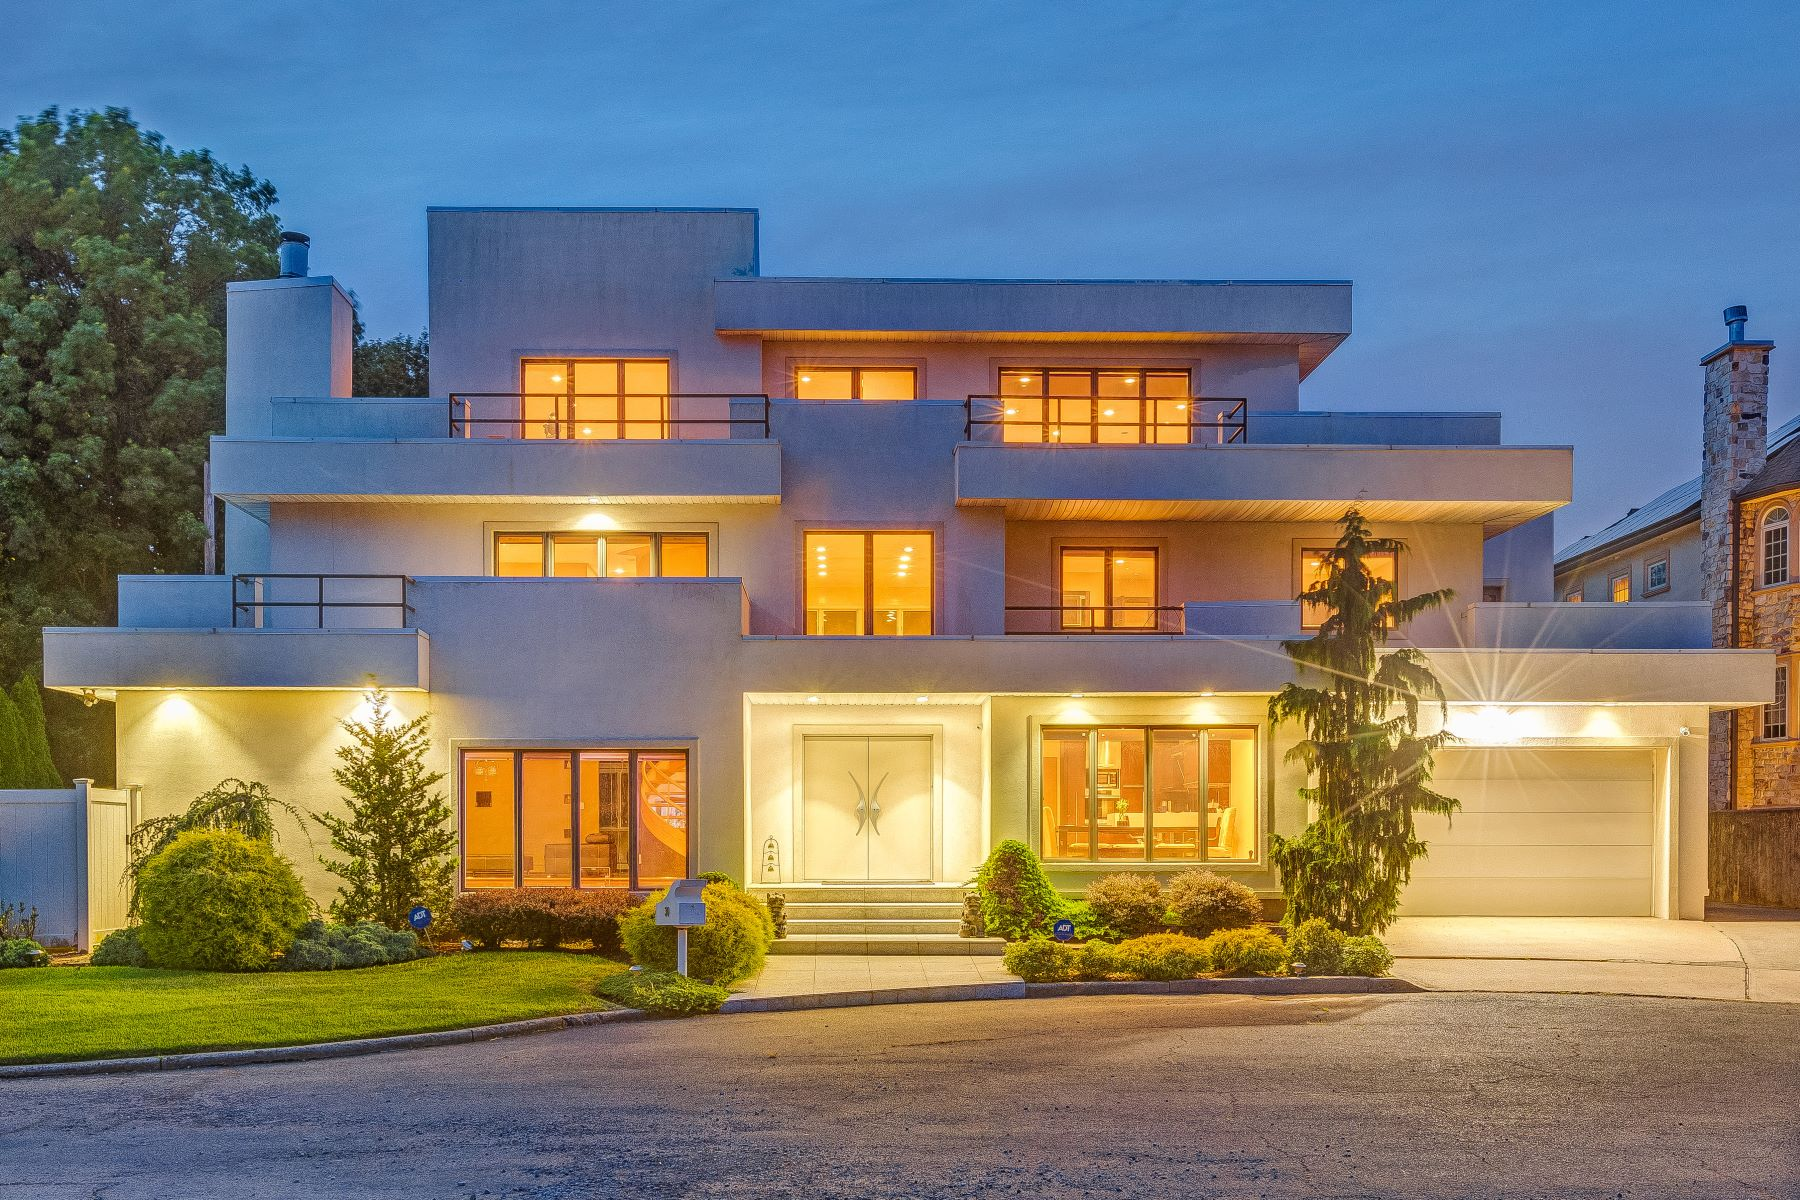 Single Family Homes for Sale at Contemporary By The Ocean 30 Tricia Way Staten Island, New York 10307 United States